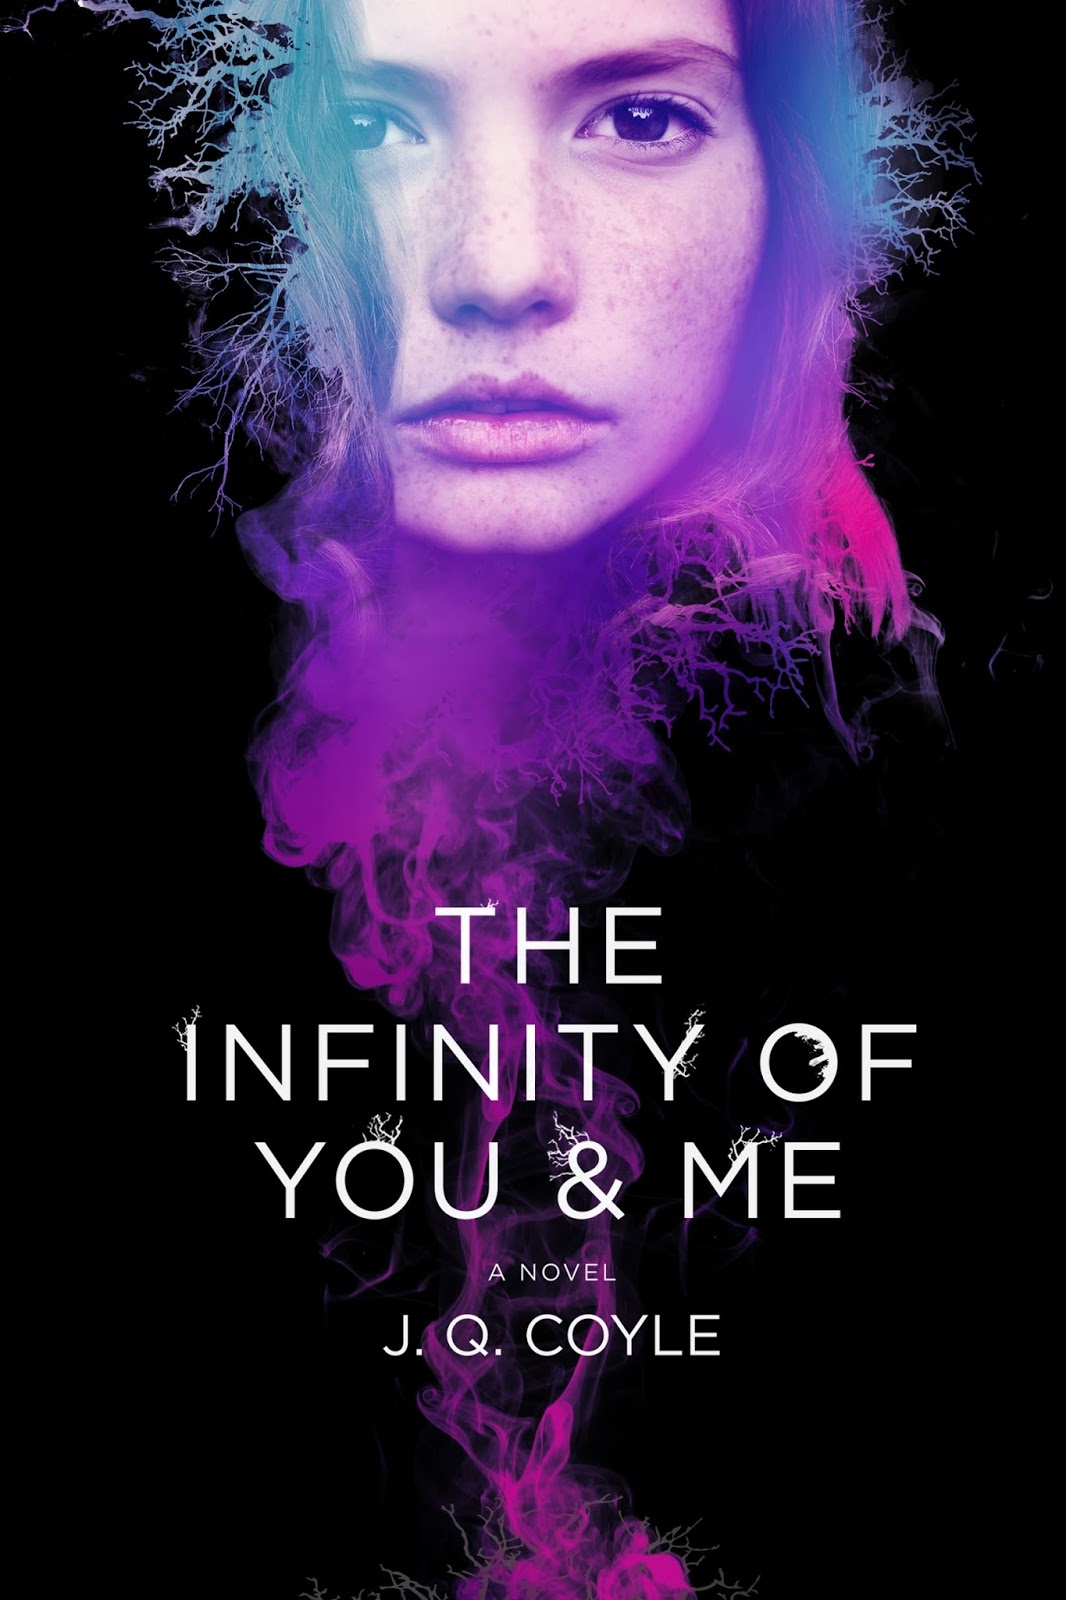 The Infinity of You & Me: A Novel